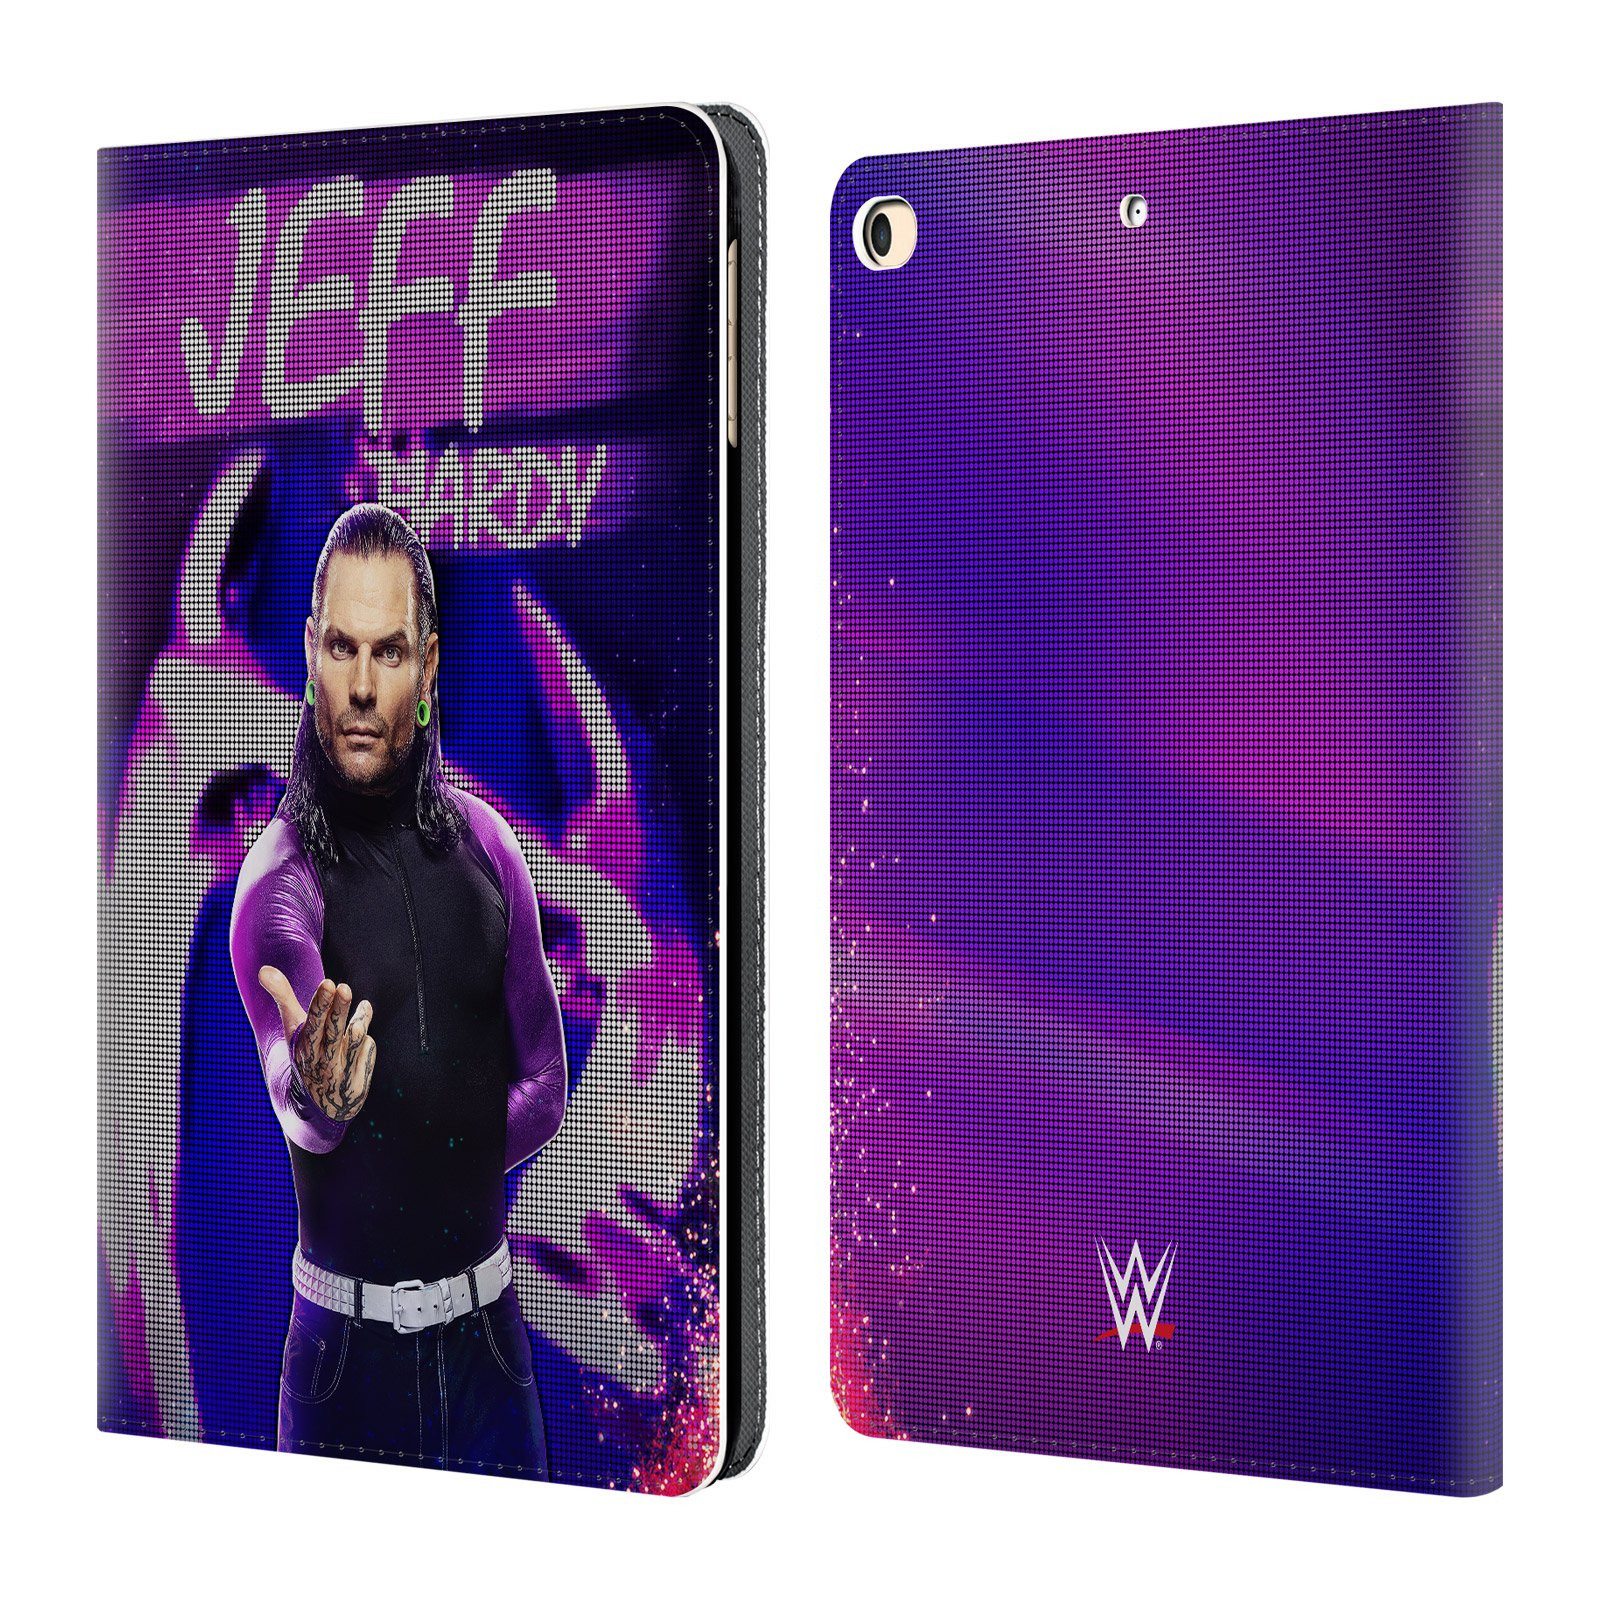 Official WWE LED Image Jeff Hardy Leather Book Wallet Case Cover for iPad 9.7 2017 / iPad 9.7 2018